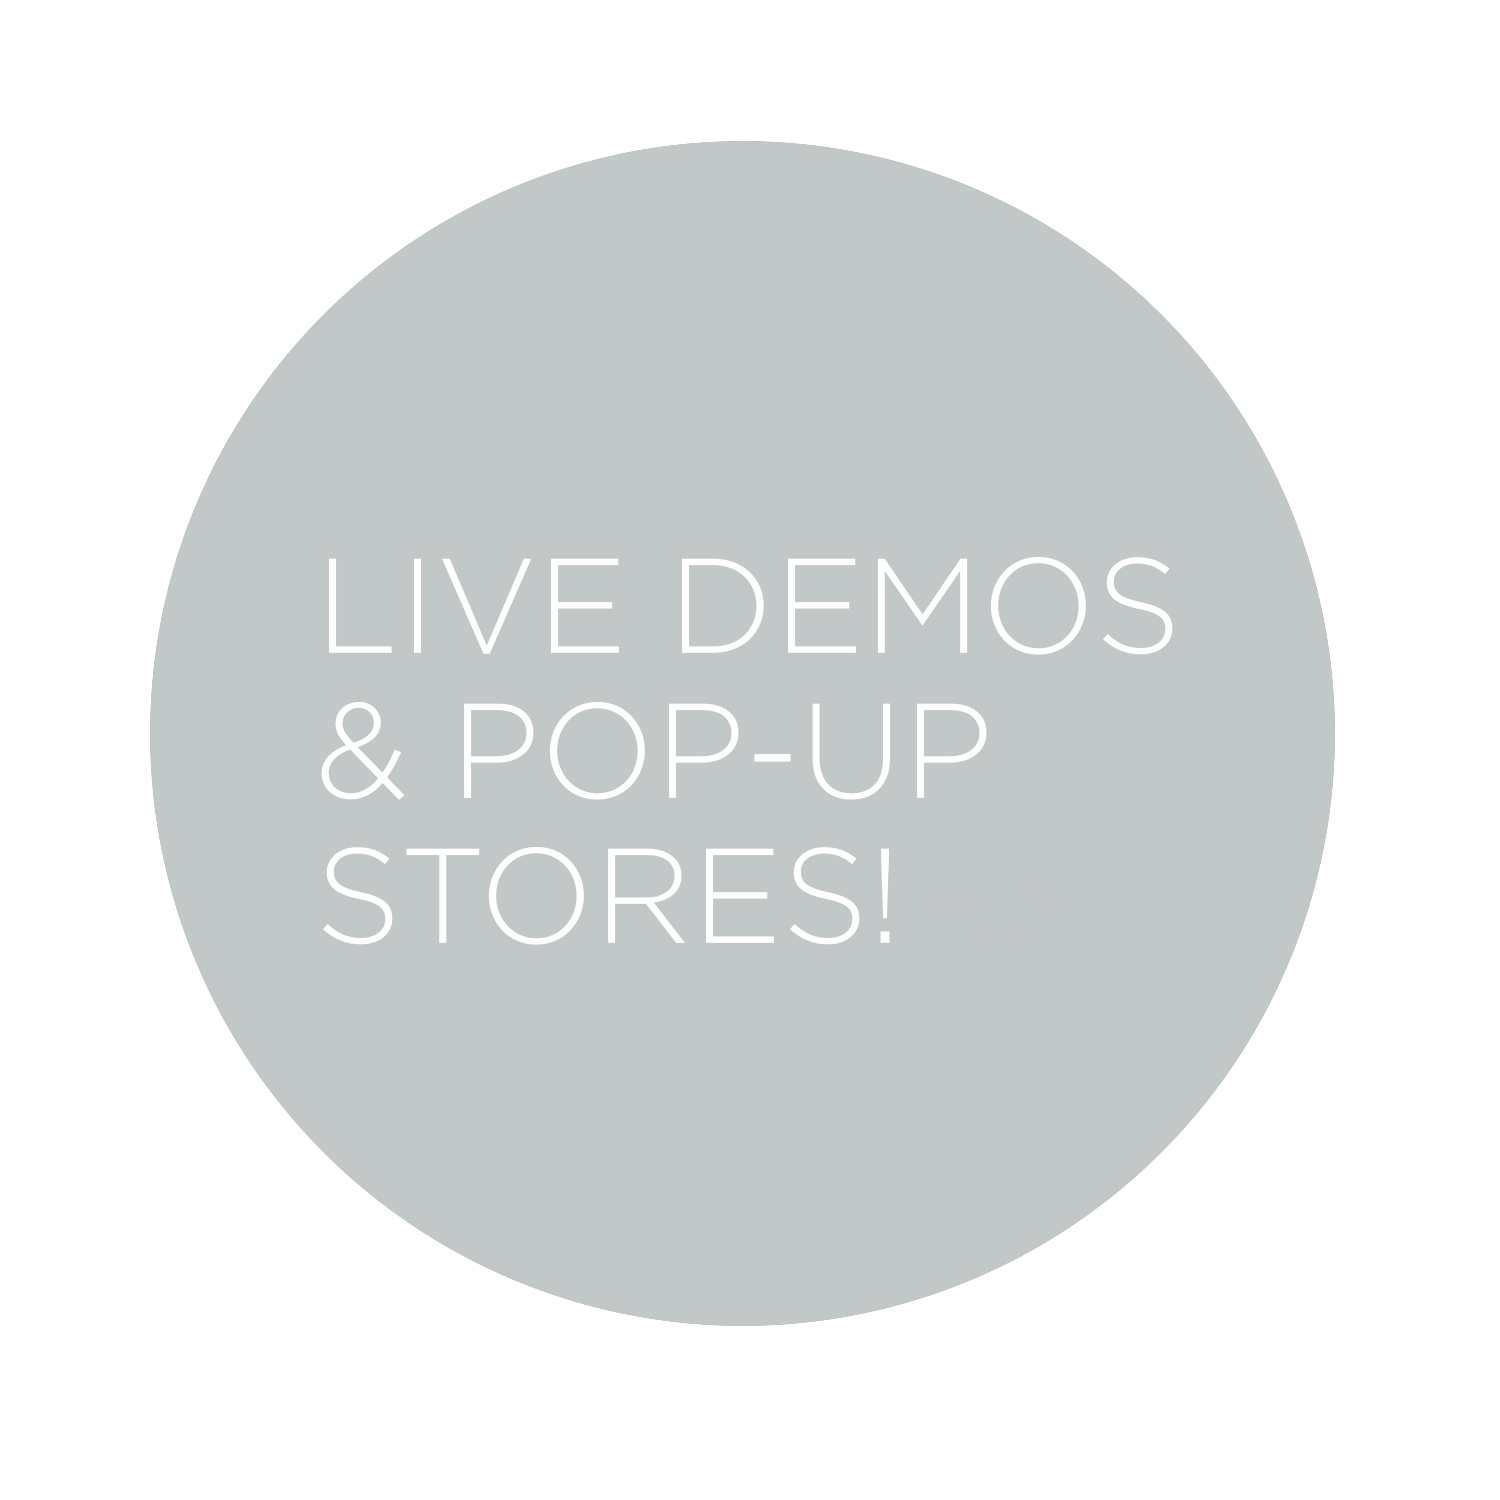 live_demos_pop-up_stores.jpg